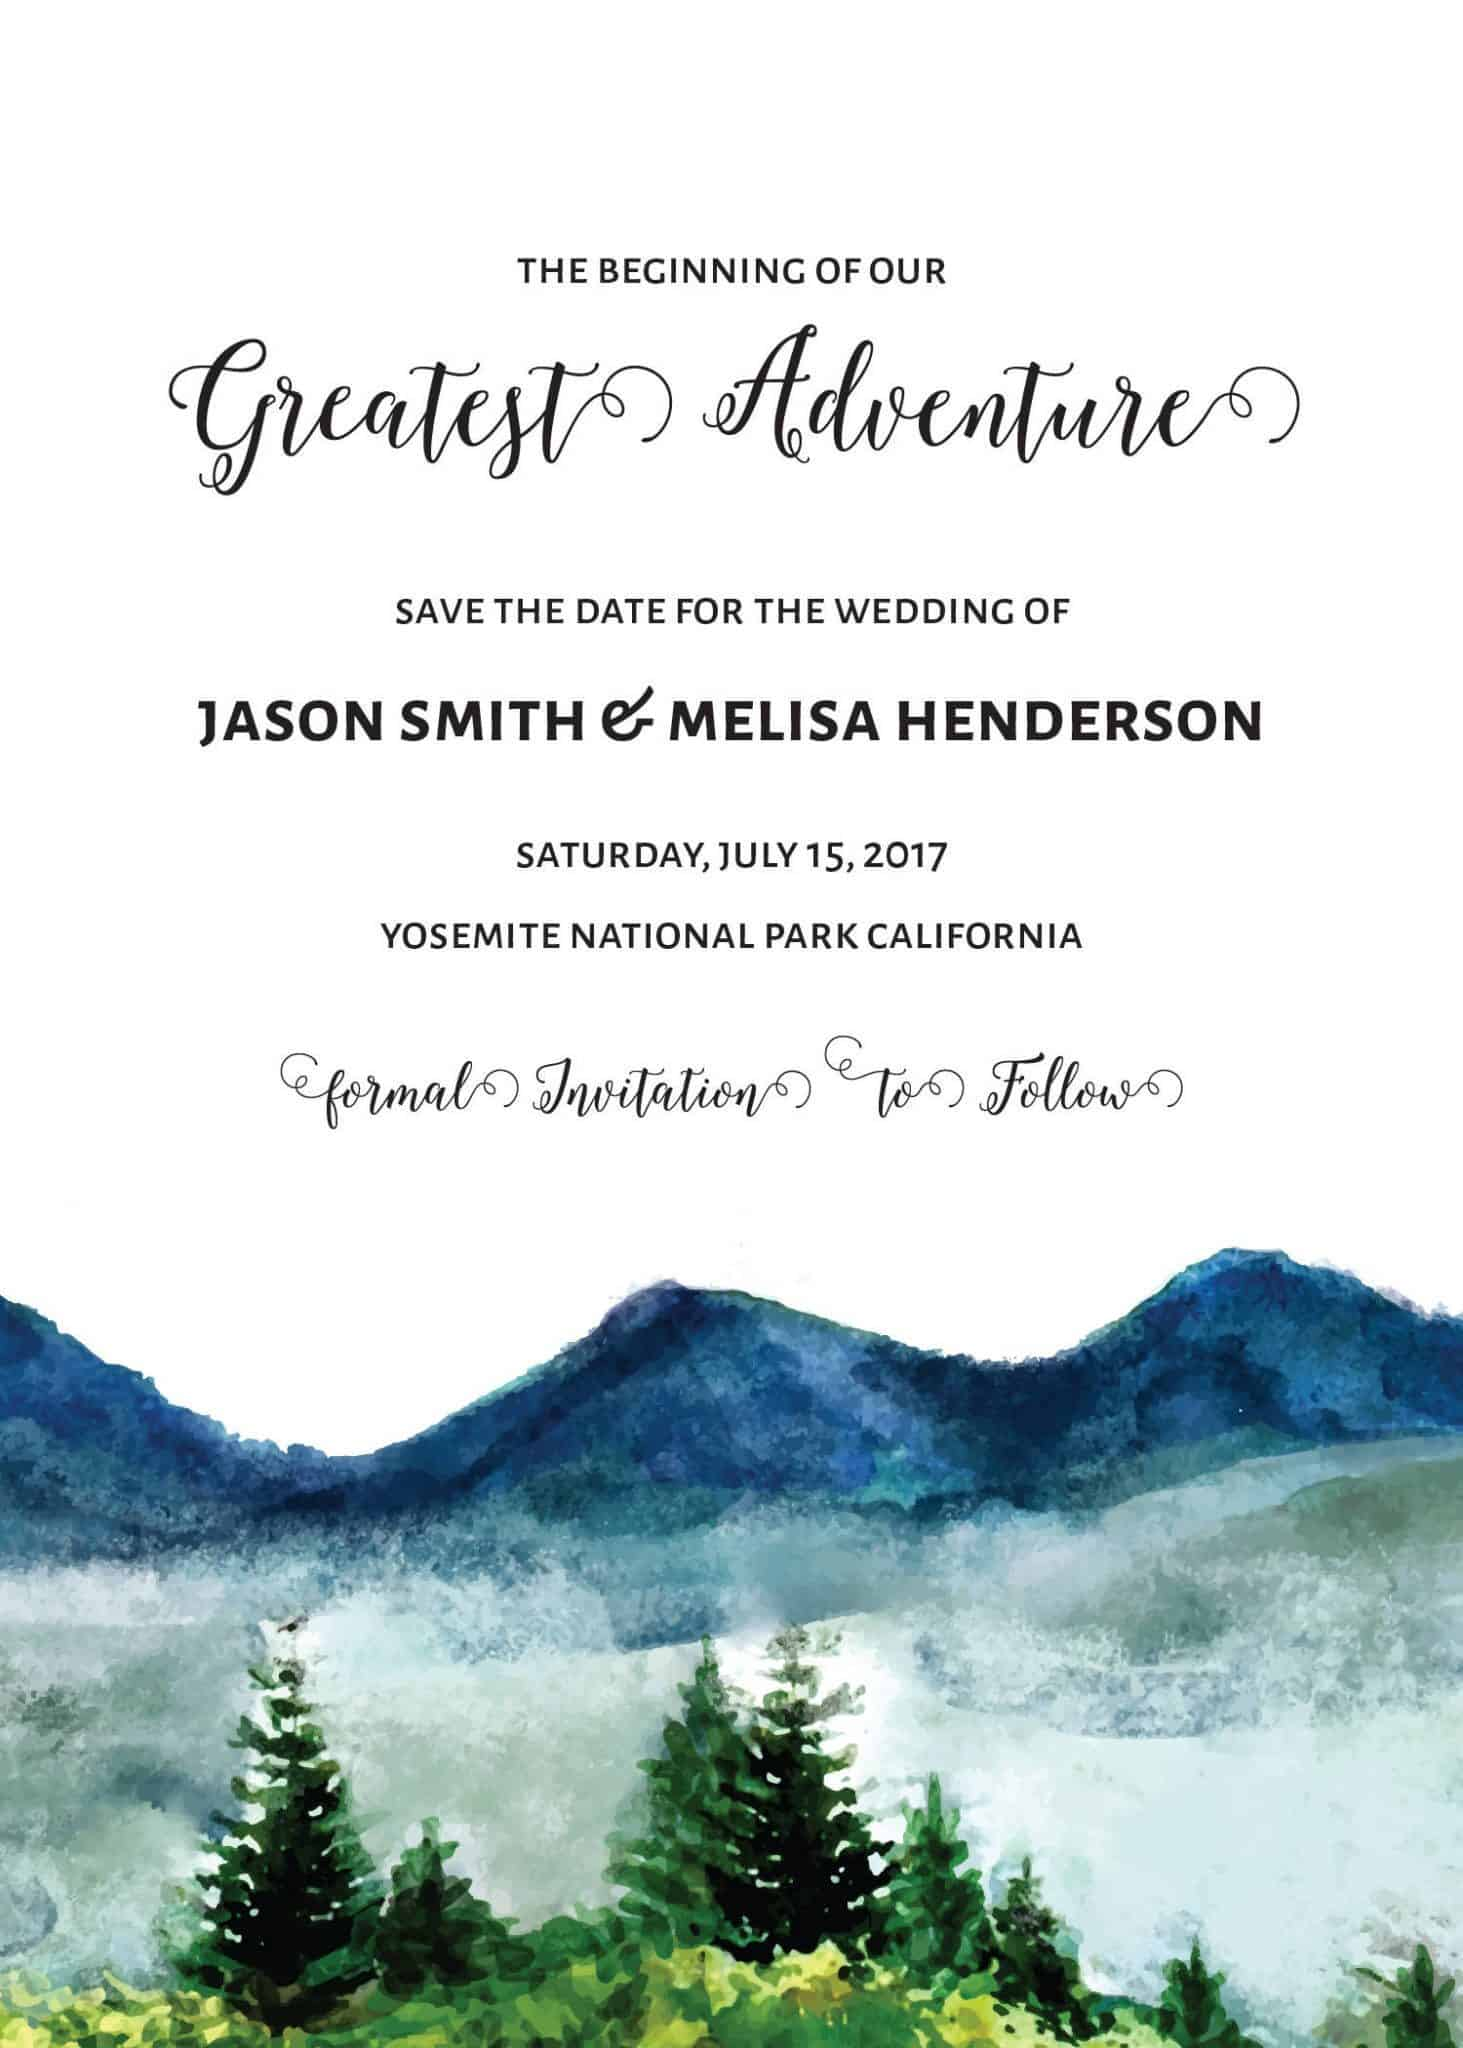 The Beginning of Our Greatest Adventure Save the Date Cards, Mountains Save the Date Cards